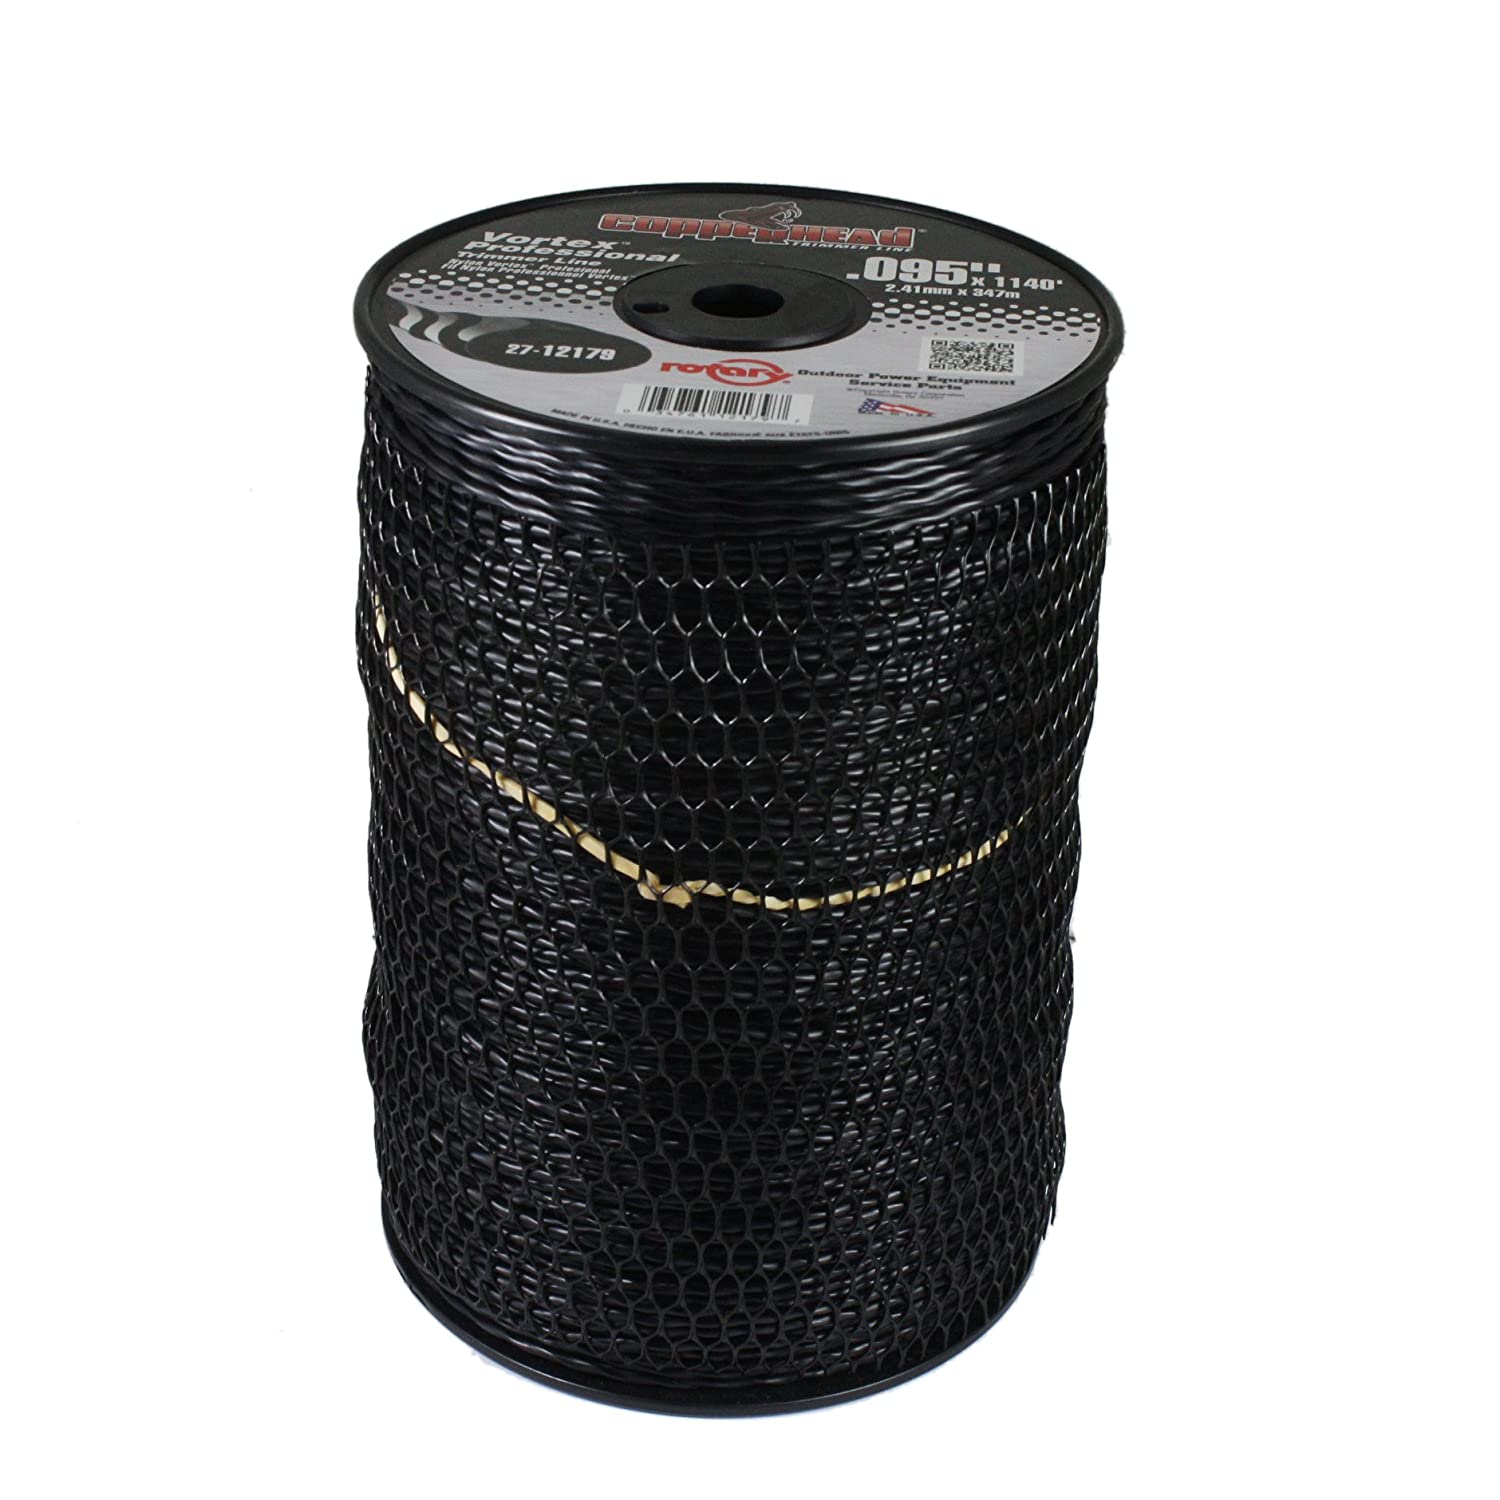 Rotary Item 12179, Vortex Trimmer Line .095 X 1140' 5 Large Spool